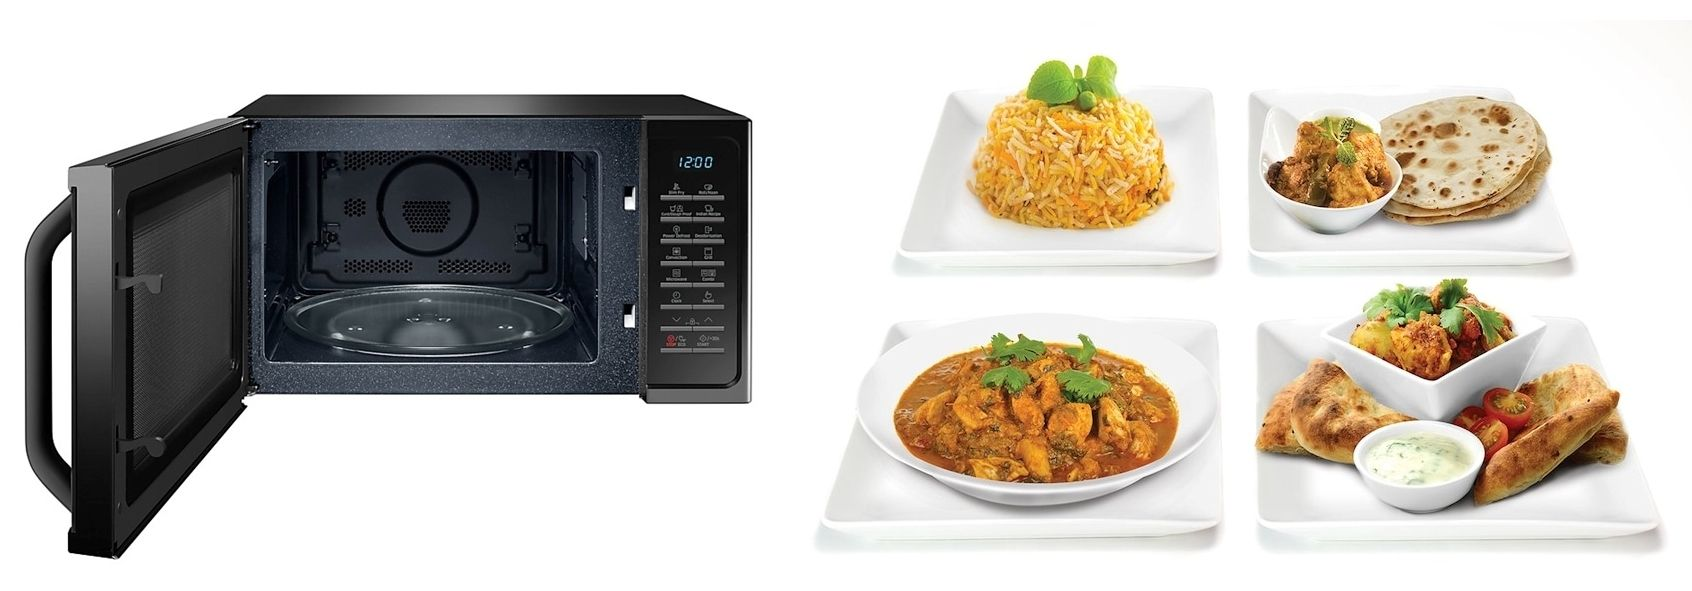 8 Best Microwave Oven Under 15000 Rupees In India Market